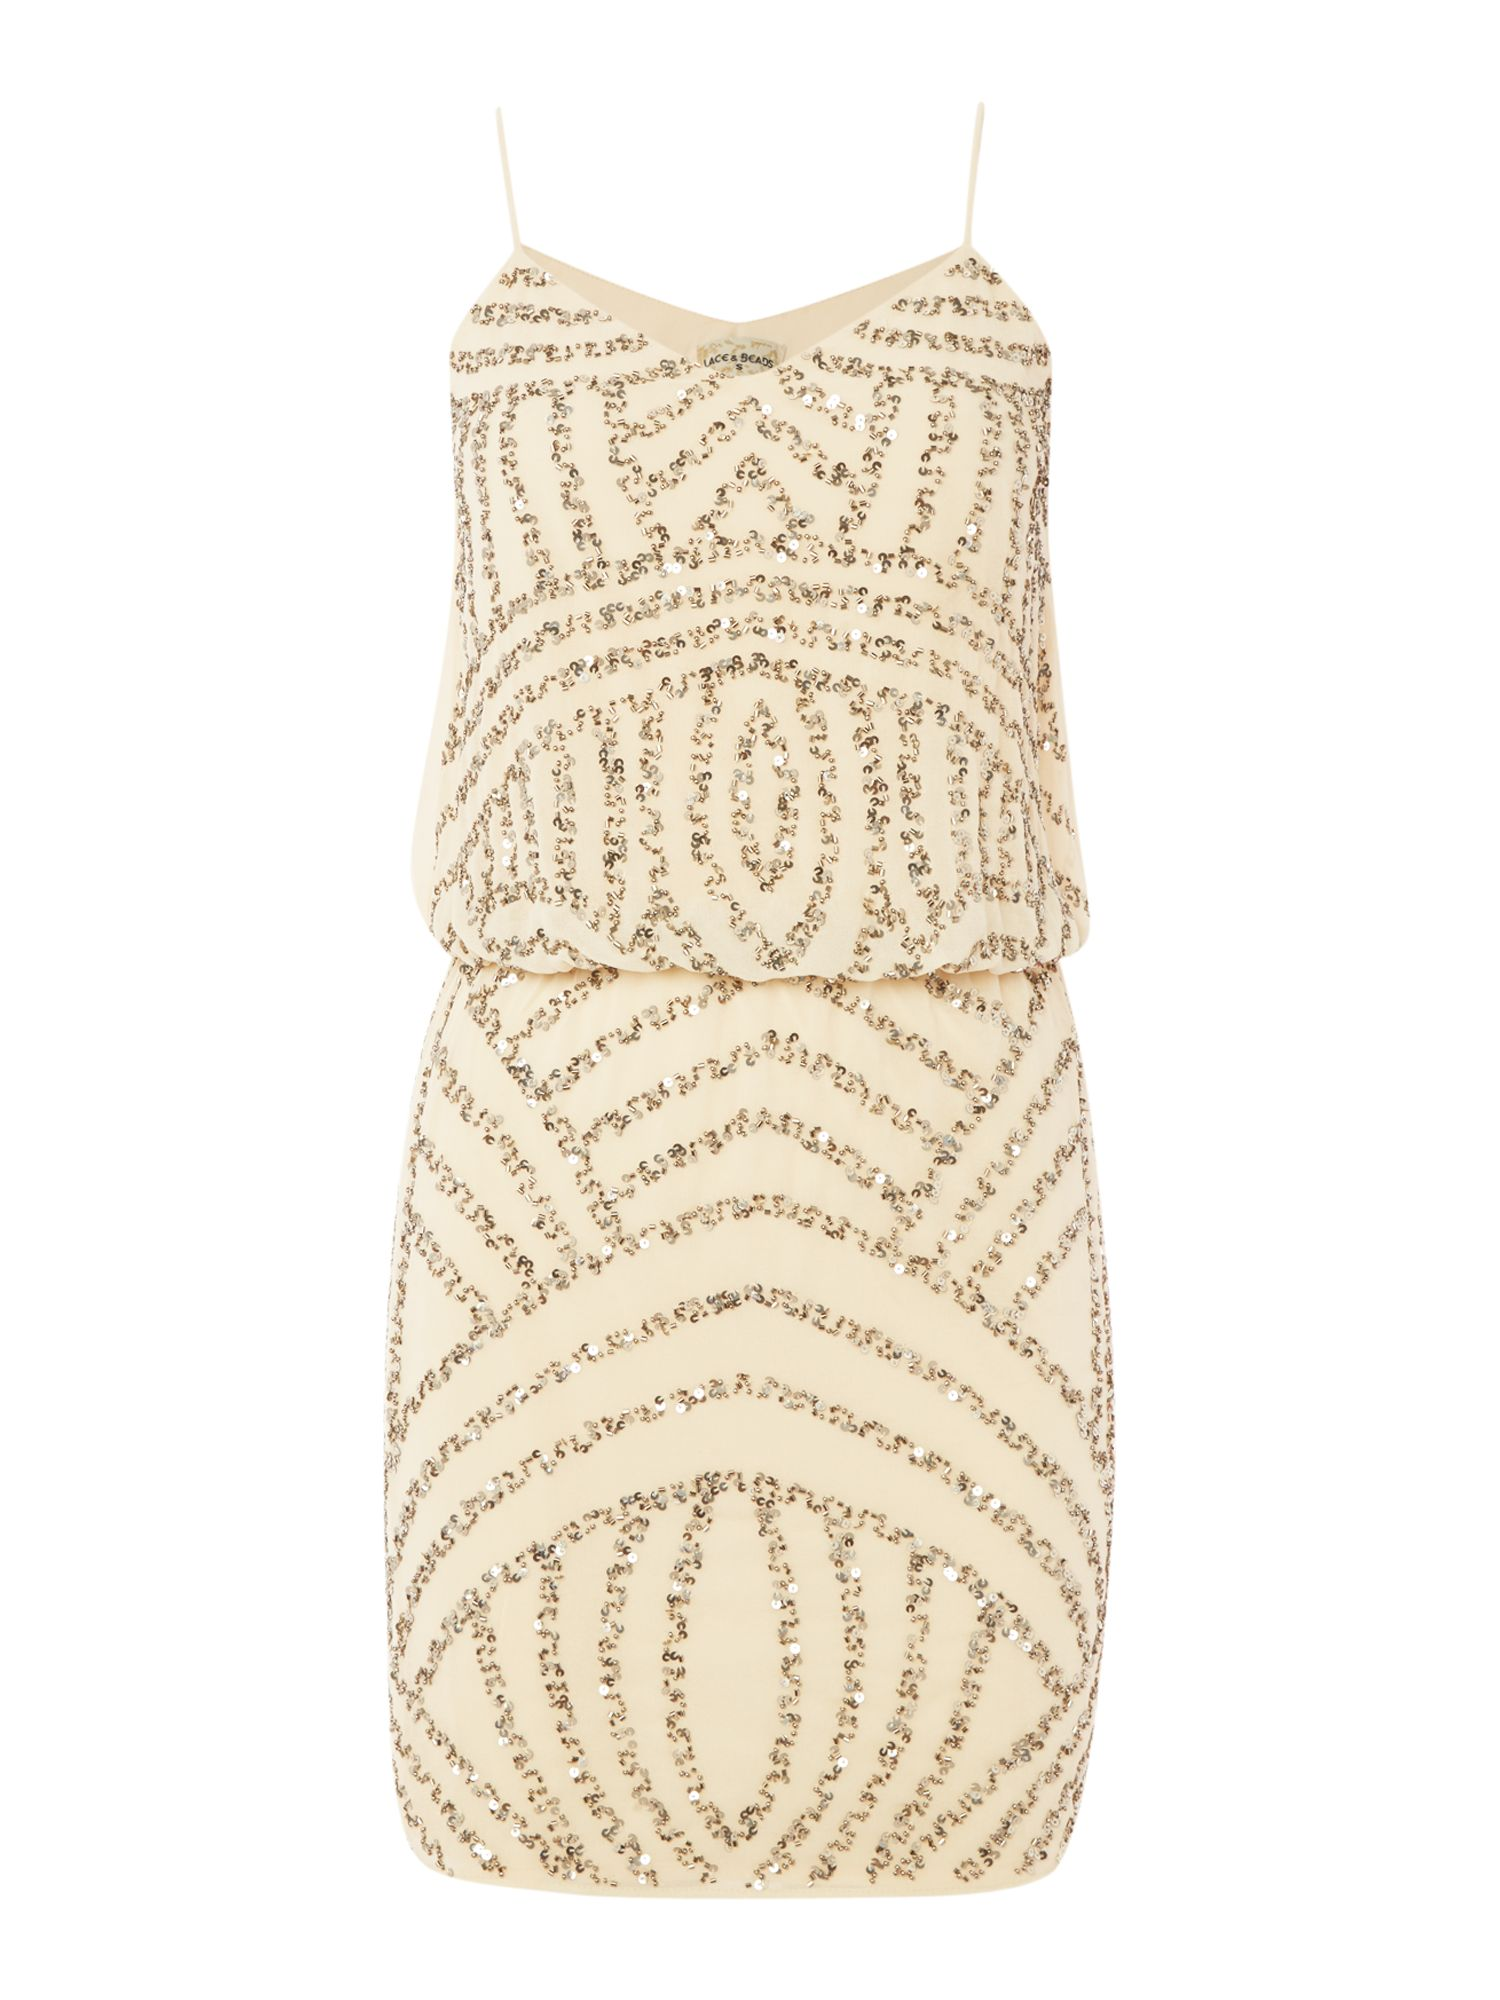 Lace and Beads Lace and Beads Sleeveless Blouson Top Dress, Cream